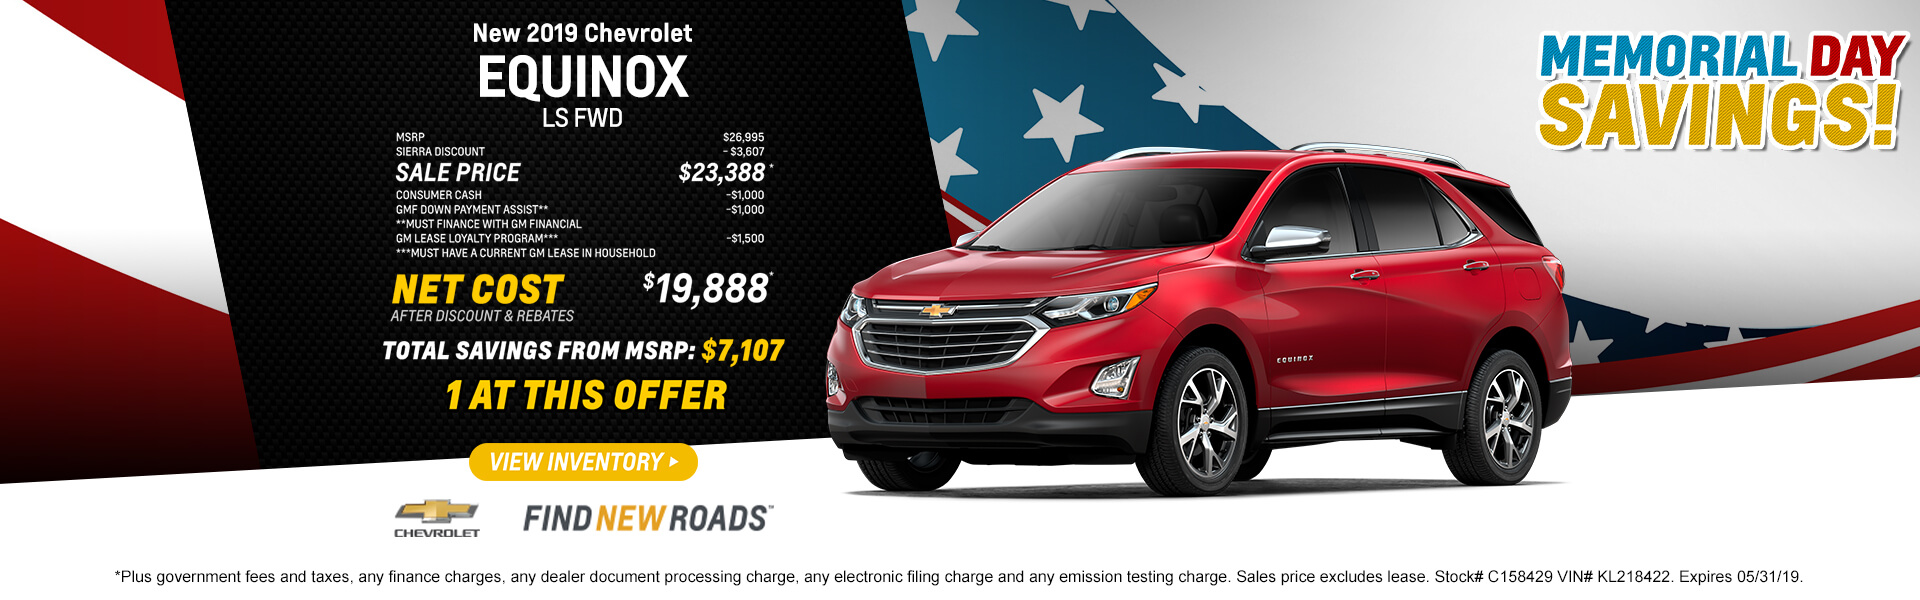 2019 CHEVROLET EQUINOX LS FWD Purchase $26,995 Plus government fees and taxes, any finance charges, any dealer document processing charge, any electronic filing charge and any emission testing charge. Sales price excludes lease. Stock# C158429 VIN# KL218422. Expires 05/31/19.